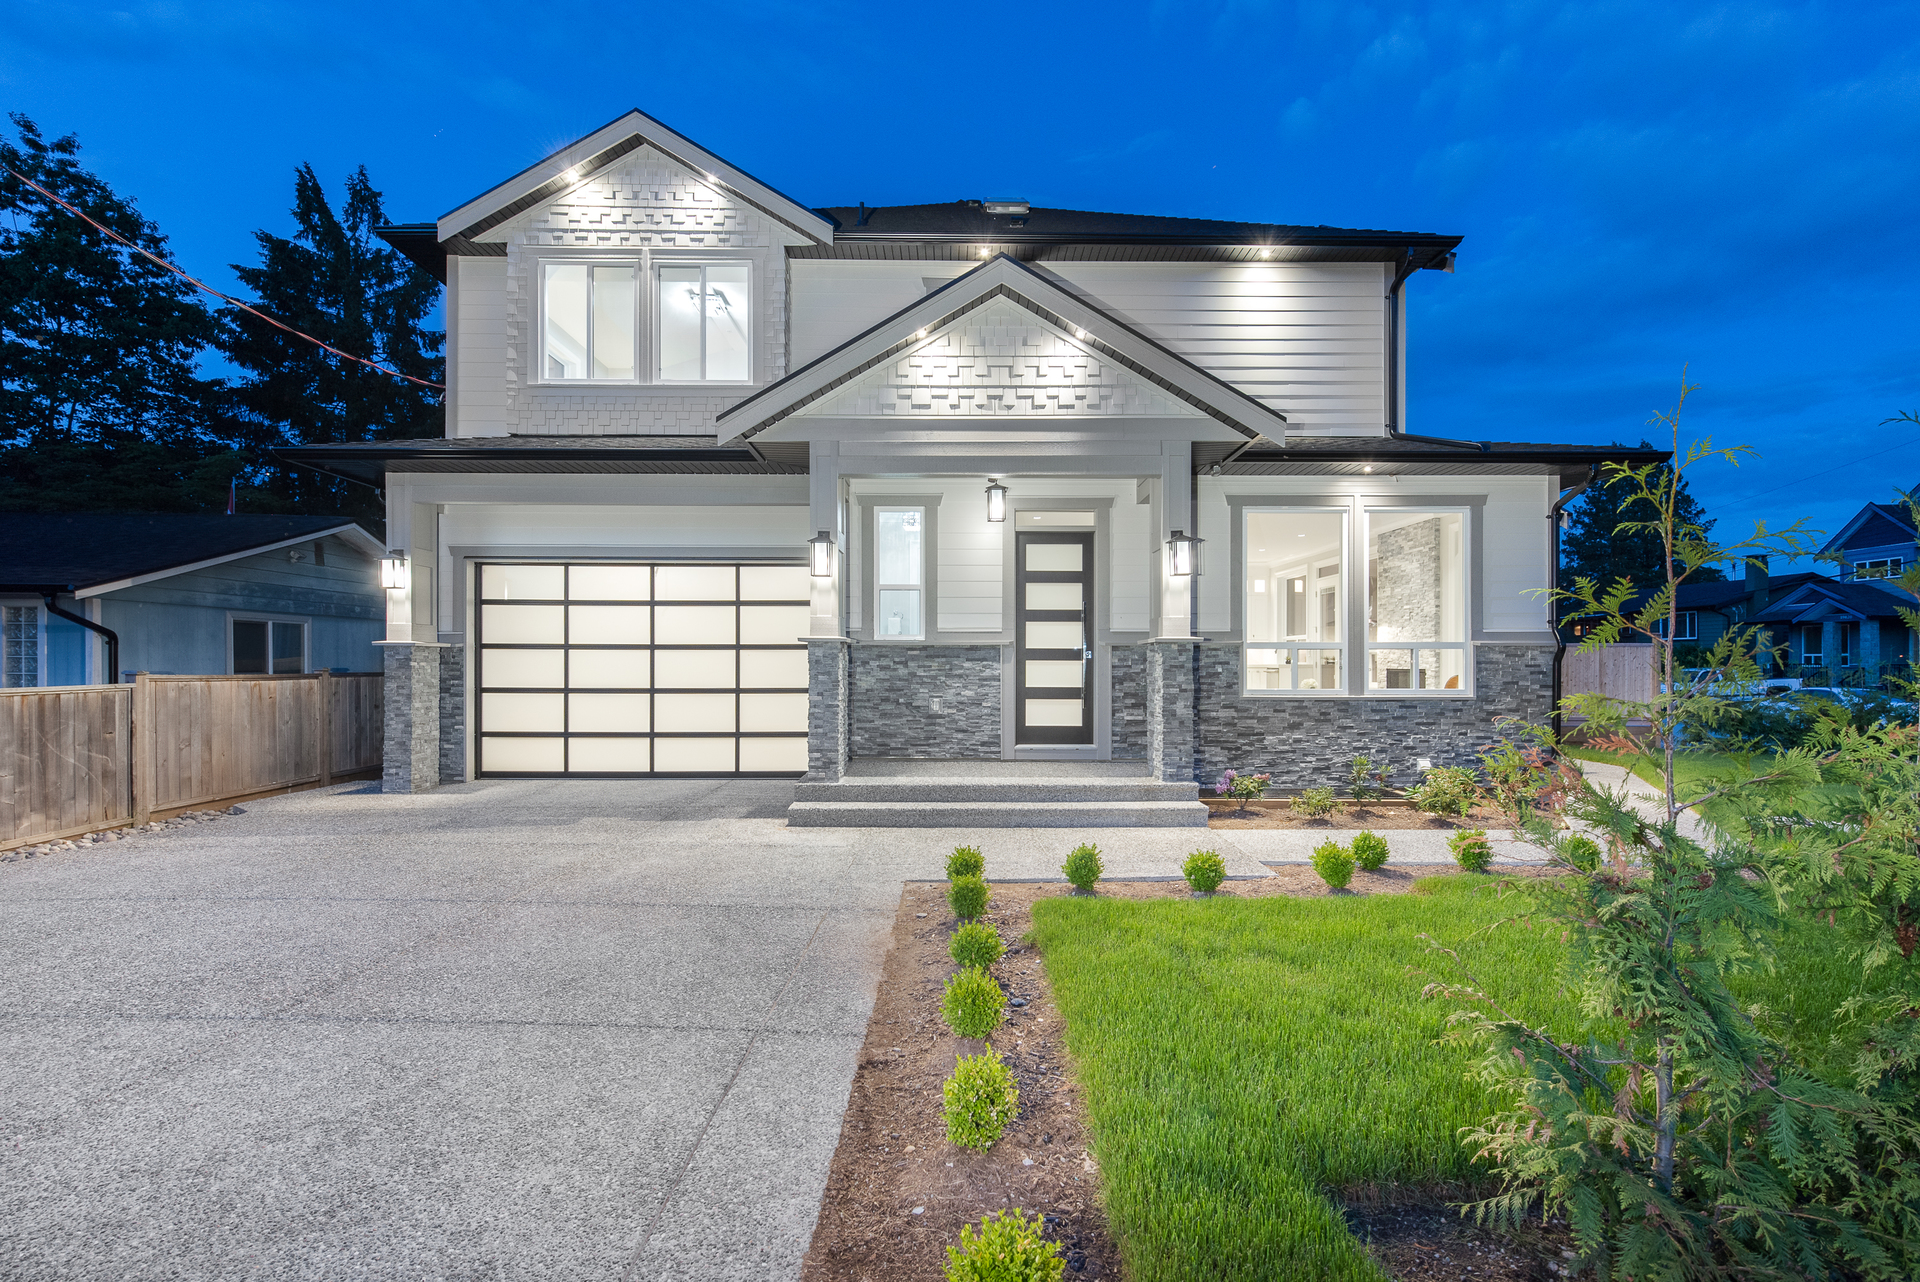 11708-blakely-rd-pitt-meadows-360hometours-02-copy at